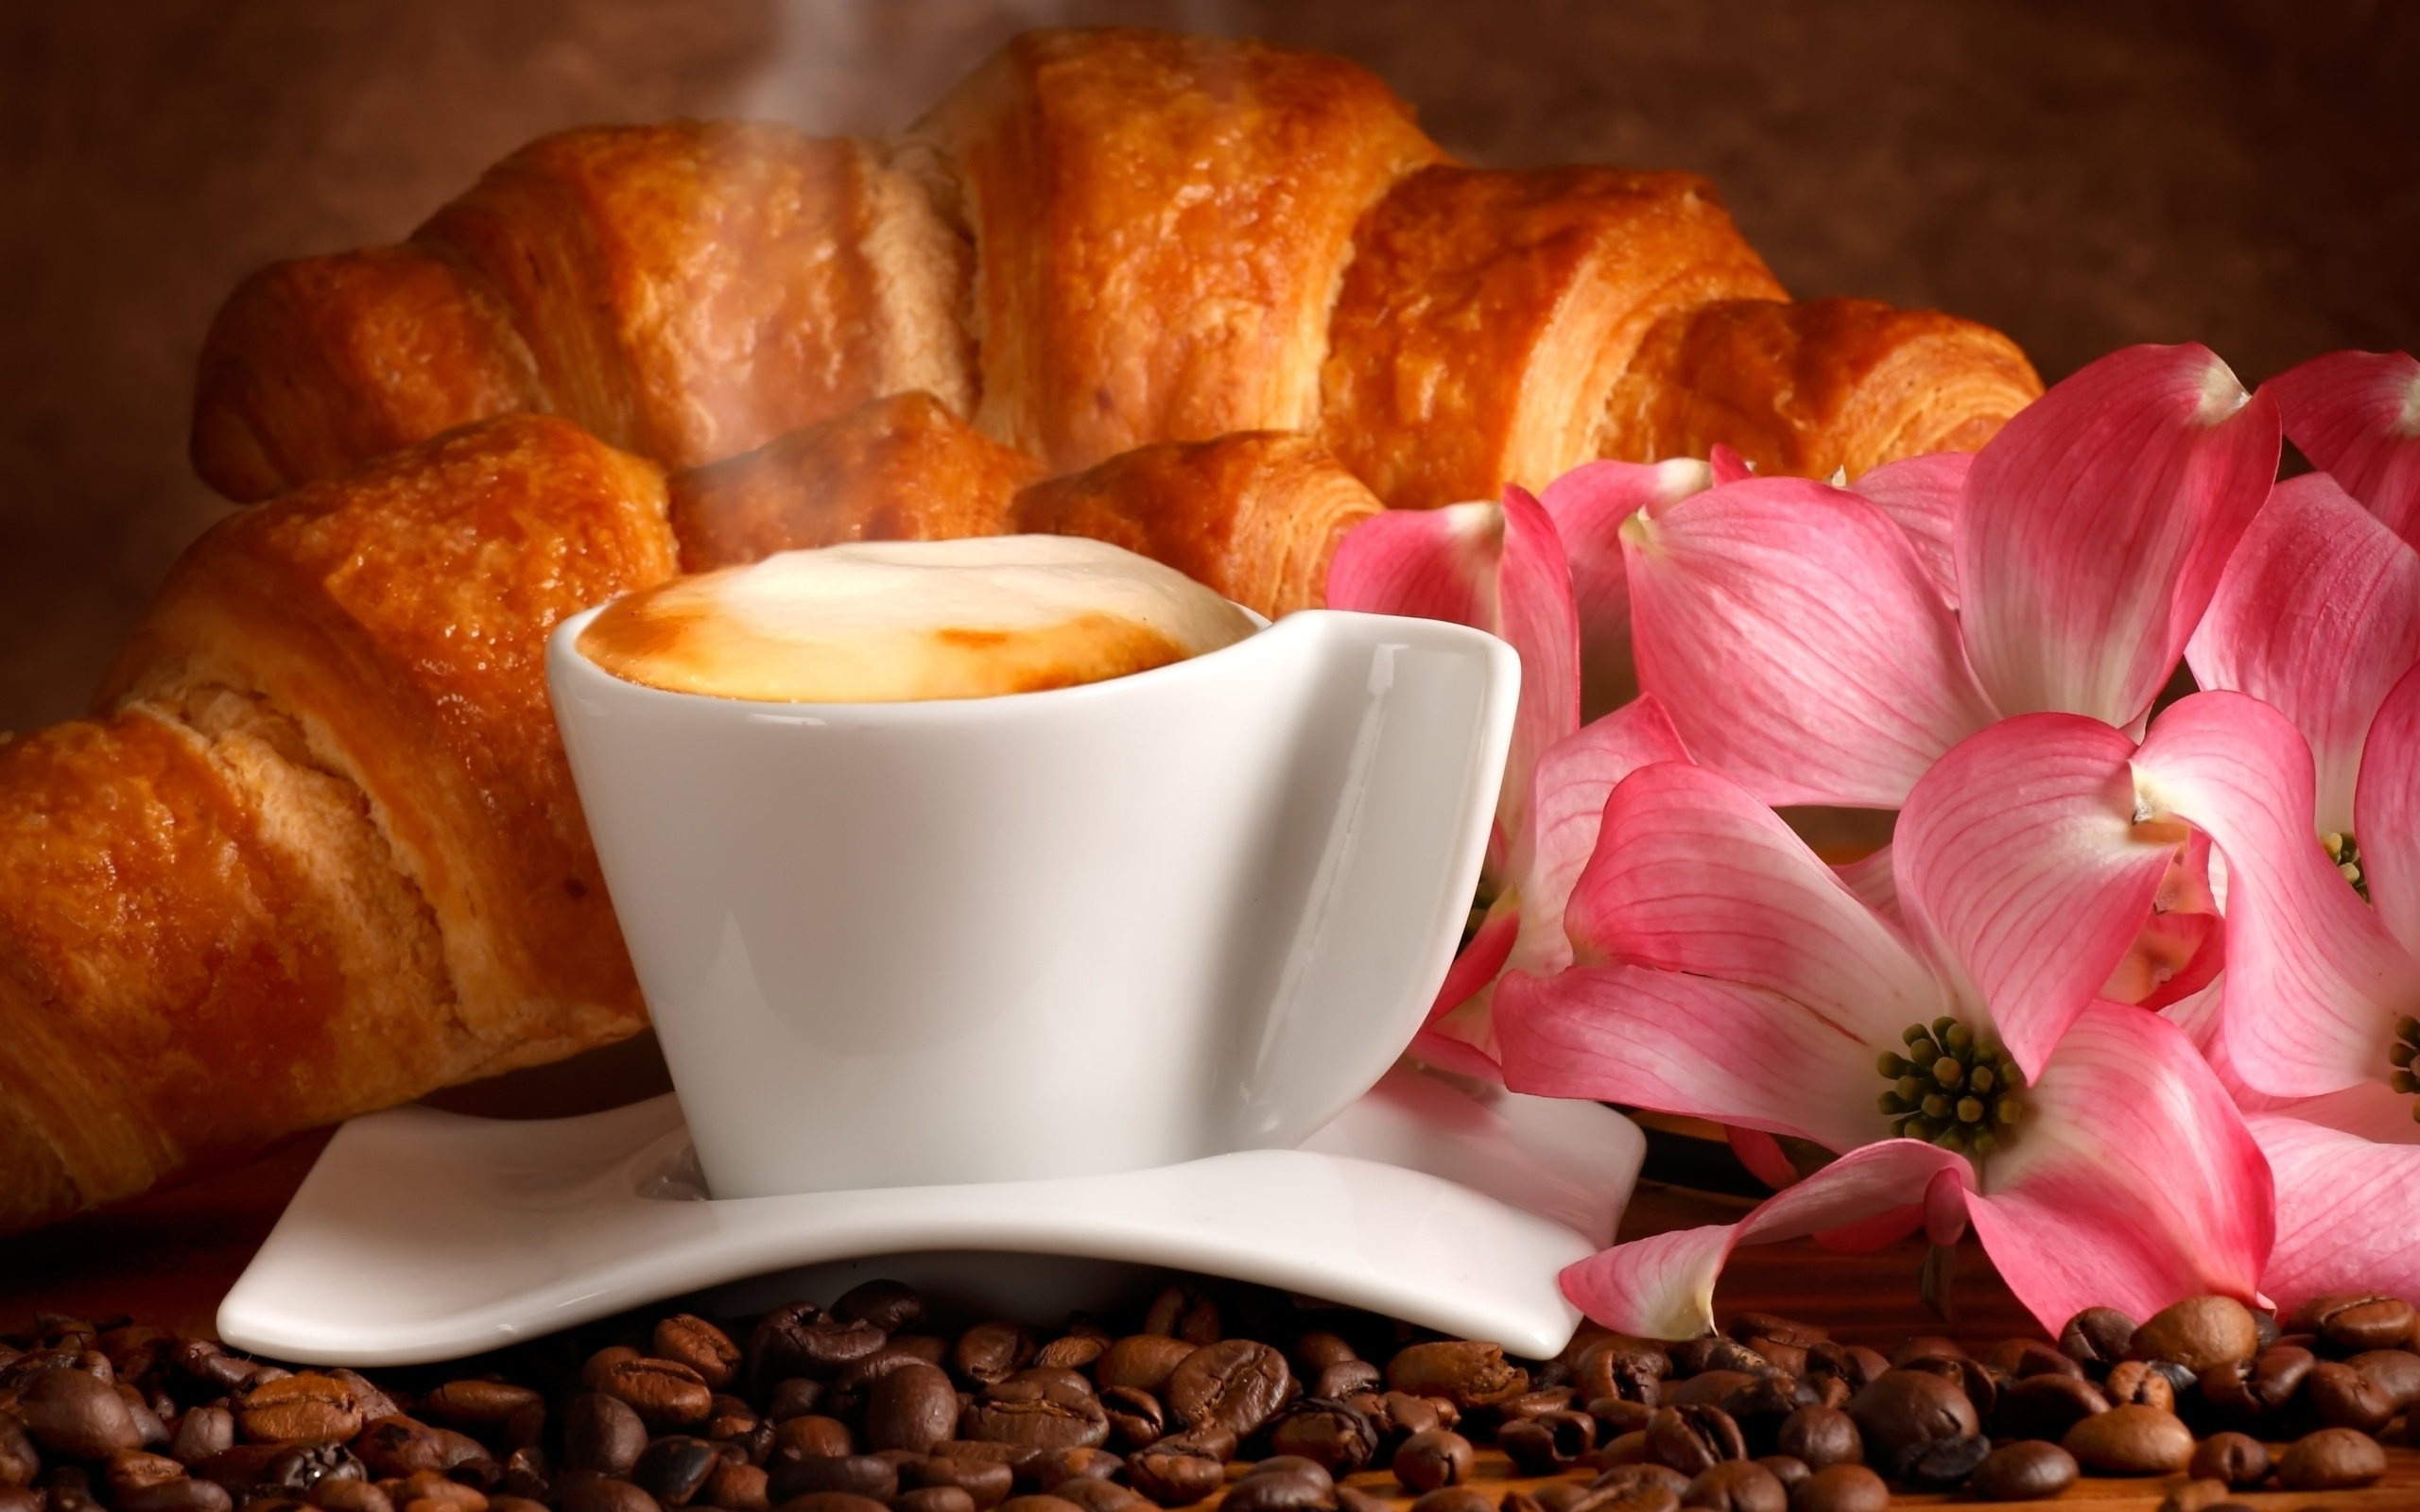 Free download Cappuccino and croissant wallpaper 1398185 [2560x1600] for your Desktop, Mobile & Tablet | Explore 94+ Croissant Wallpapers | Croissant Wallpapers,